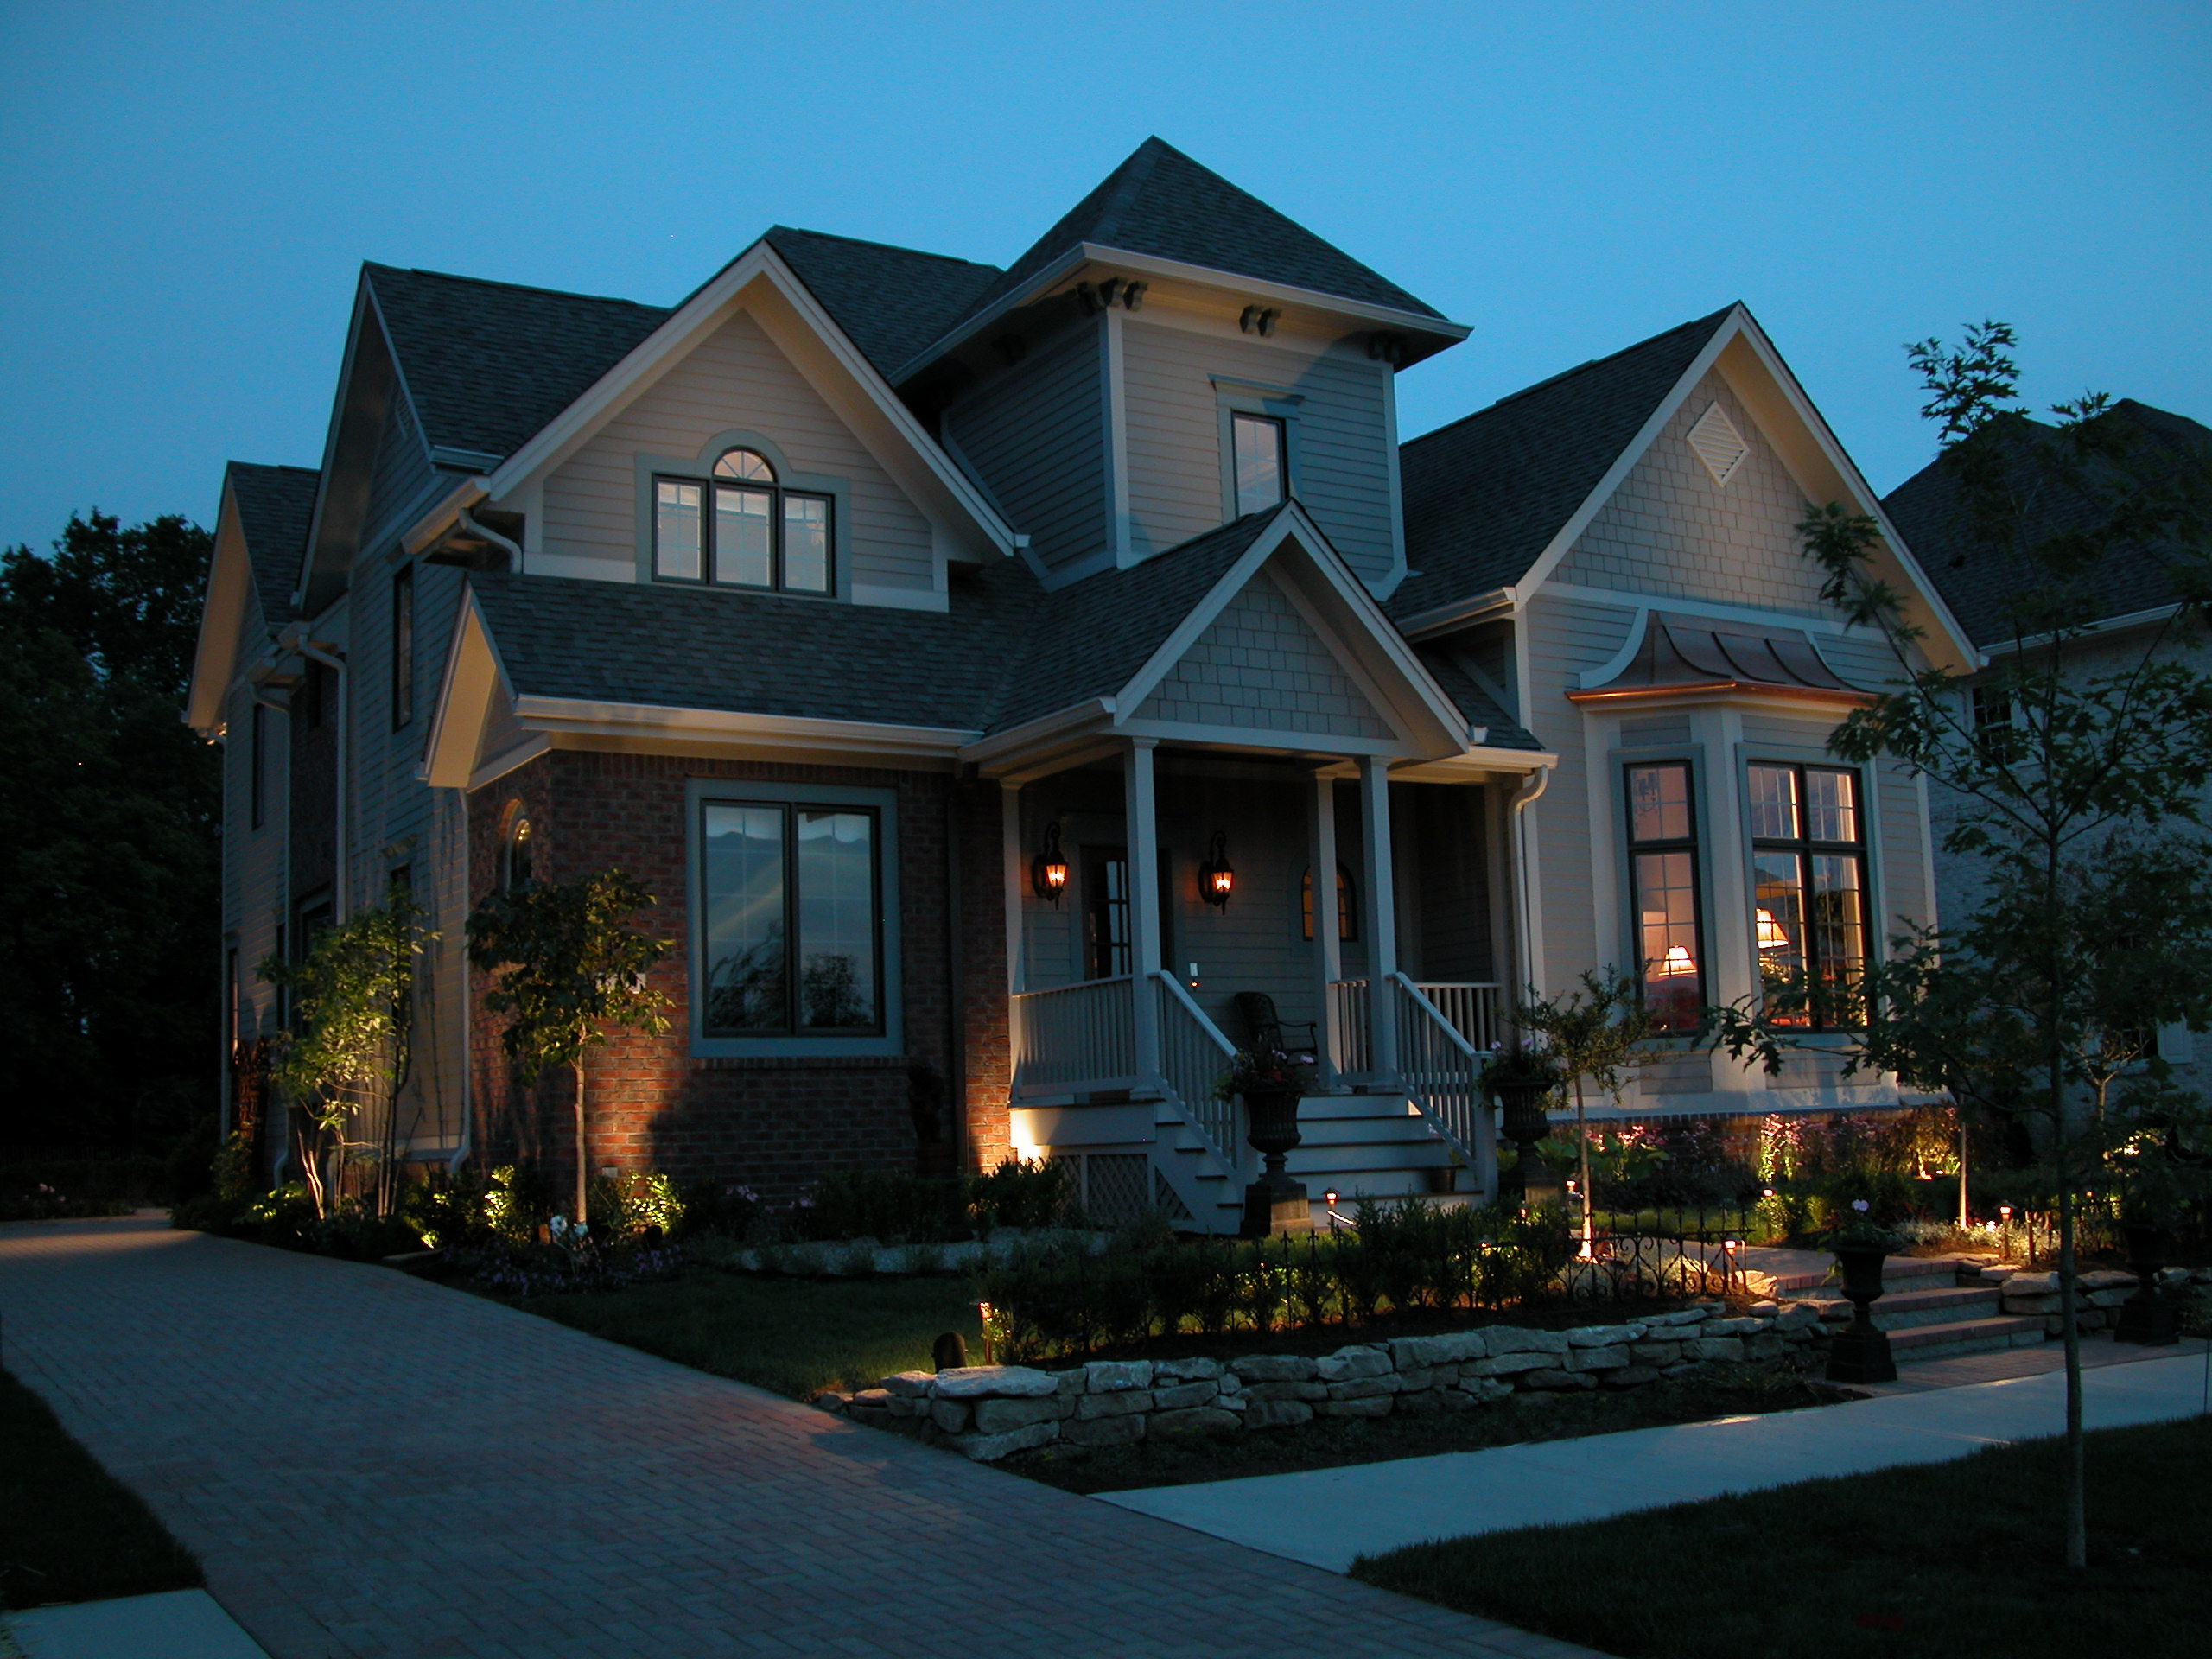 LED Outdoor Lighting: Save Green by Being Green | Outdoor Lighting ...